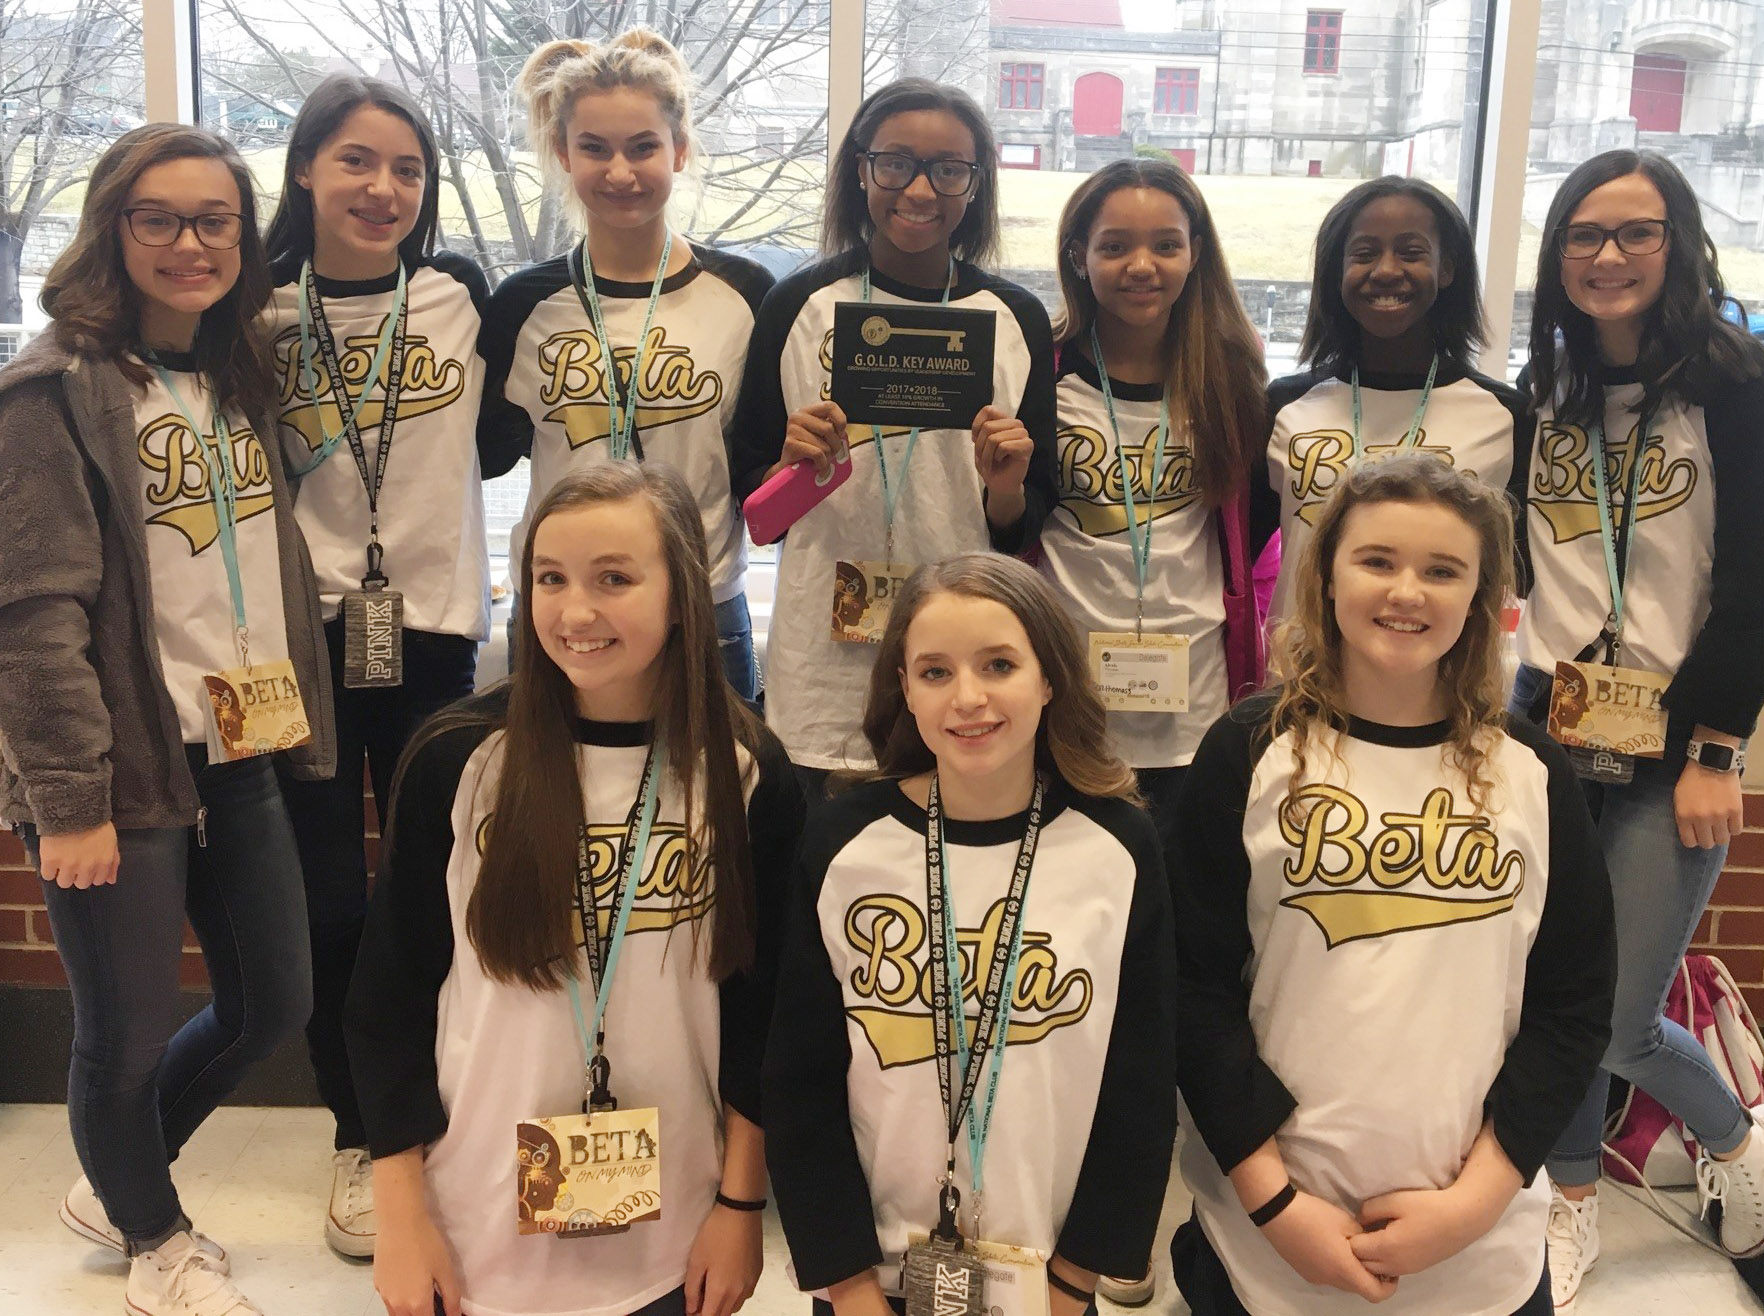 As a whole, the CMS Junior Beta Club was awarded a National 10% Growth Award and named a National School of Merit. From left, front, are eighth-graders Lainey Watson, Rylee Petett and Abby Brisko. Back, eighth-graders Tayler Thompson, Kaylyn Smith, Christina Miller, Bri Gowdy, Alexis Thomas, Myricle Gholston and Sarah Adkins.